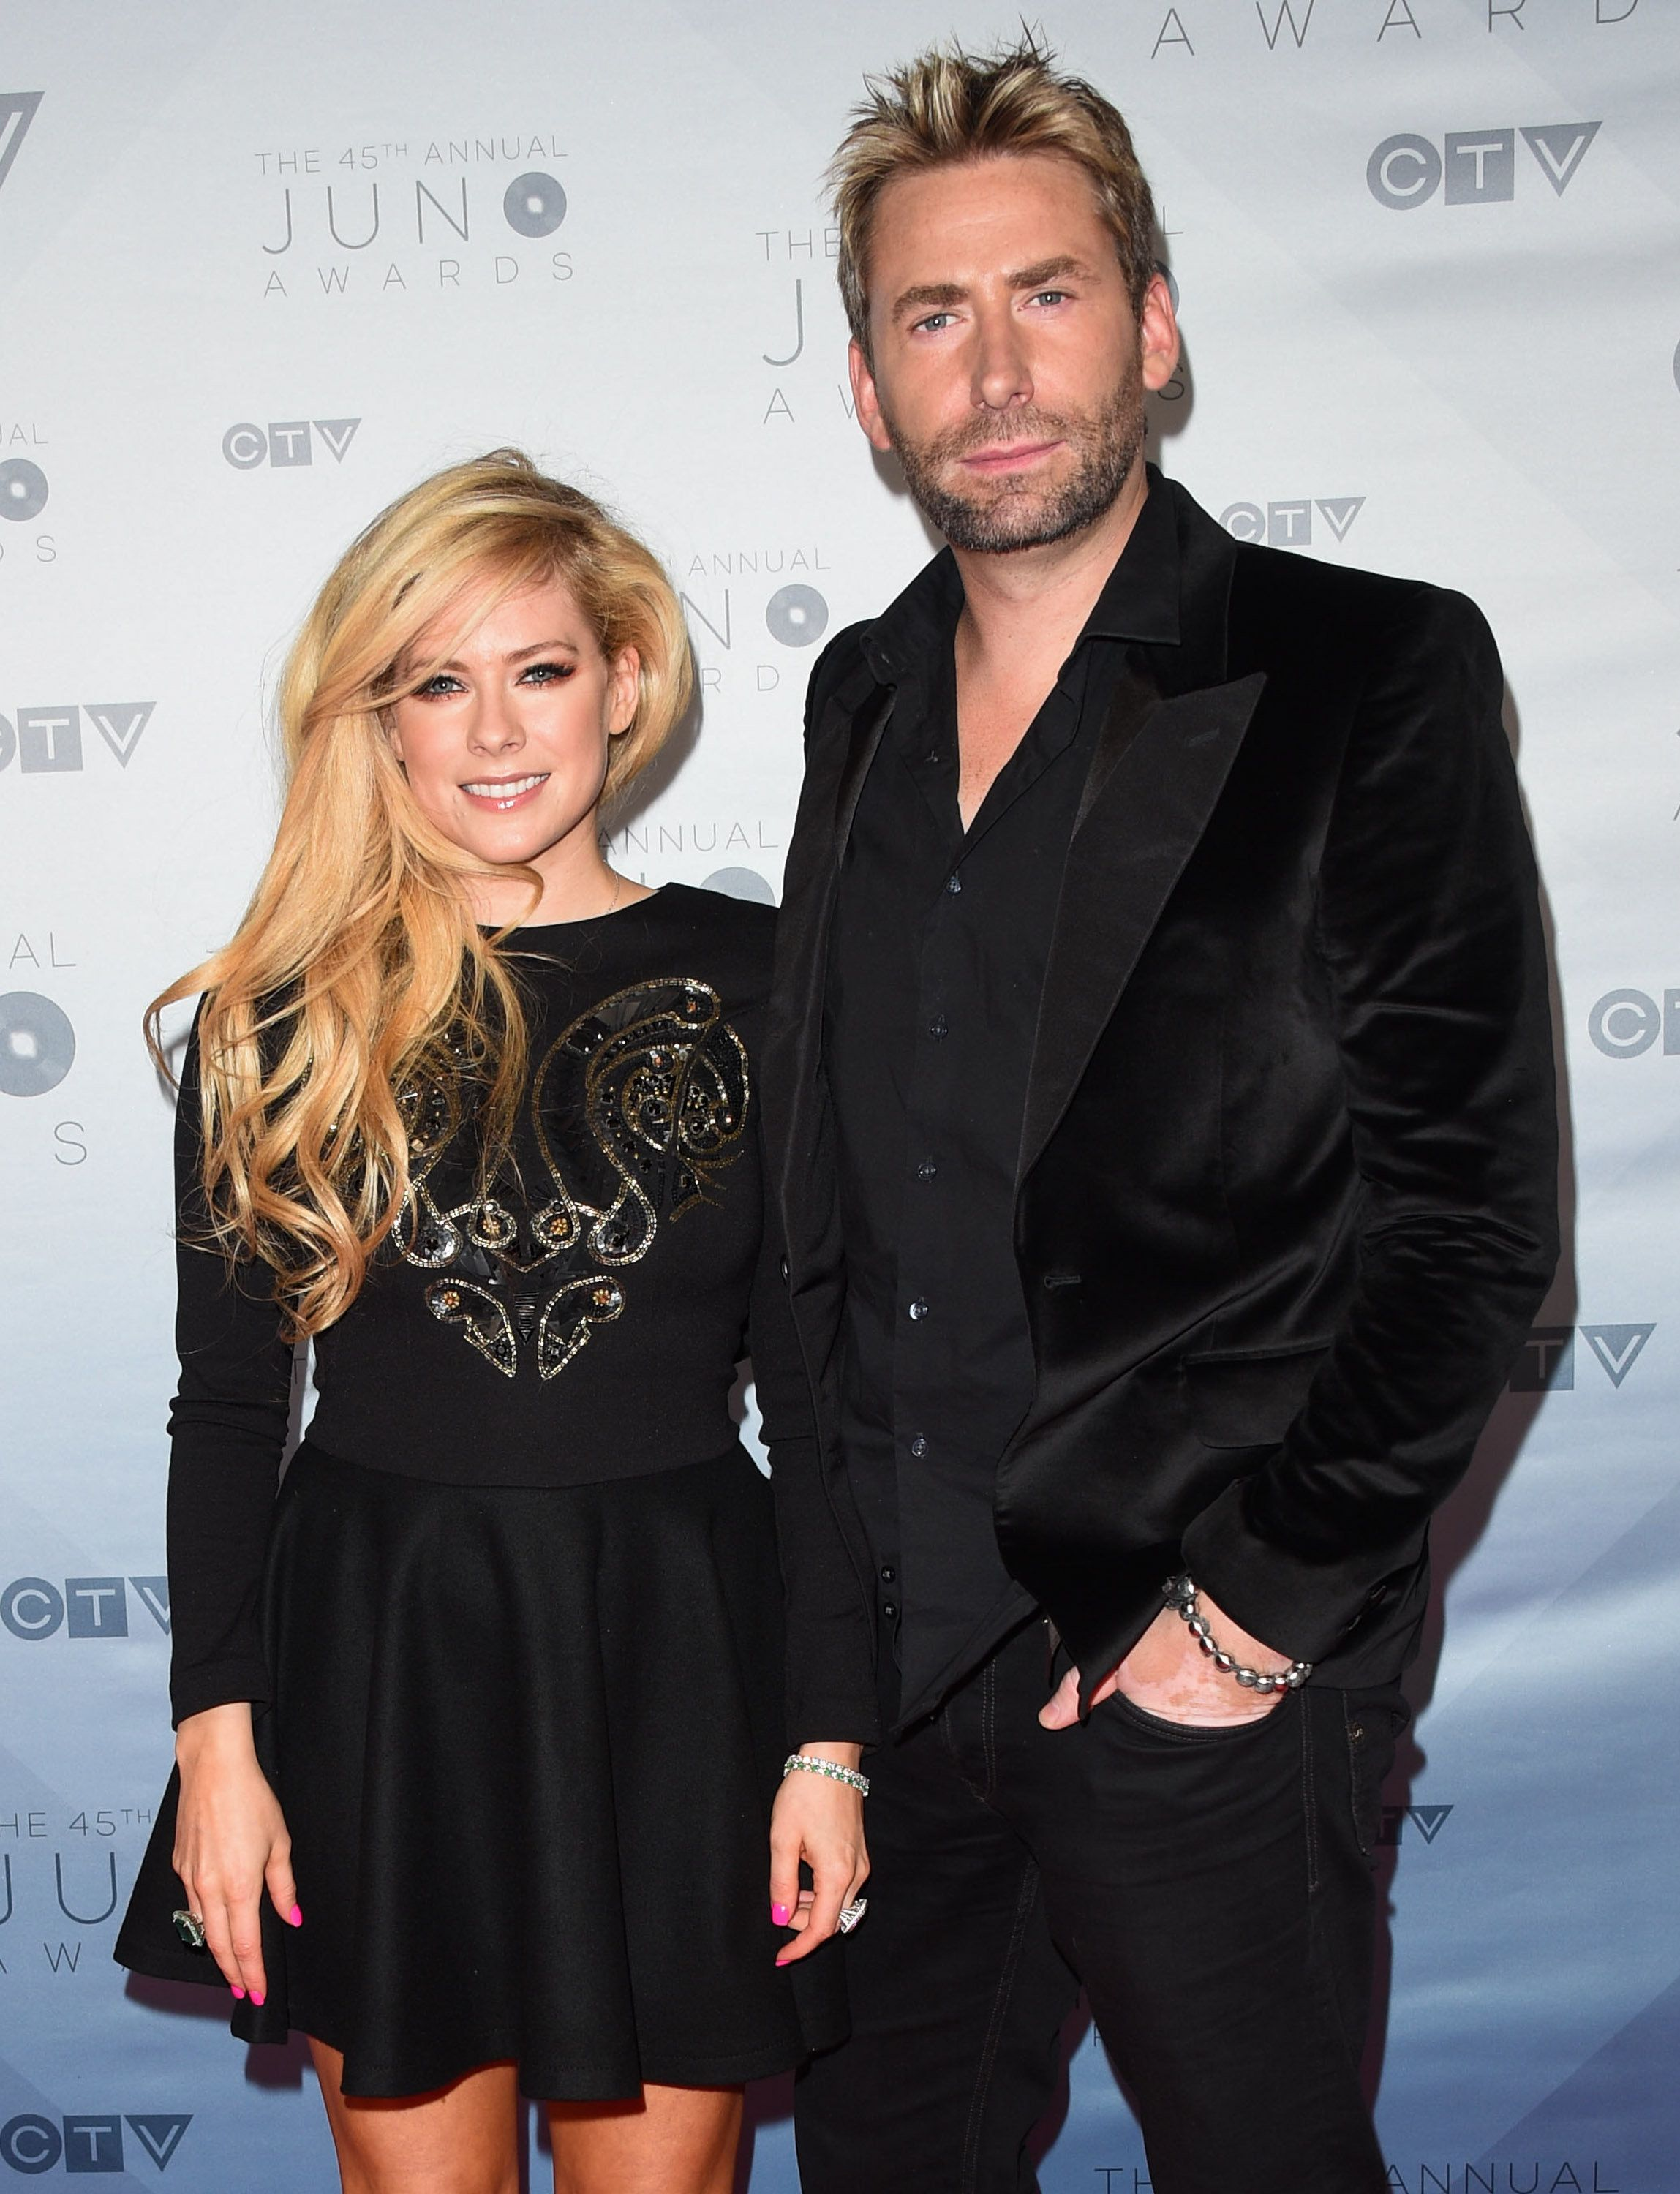 CALGARY, ALBERTA - APRIL 03:  Recording artists Avril Lavigne (L) and Chad Kroeger arrive at the 2016 Juno Awards at Scotiabank Saddledome on April 3, 2016 in Calgary, Canada.  (Photo by George Pimentel/Getty Images)